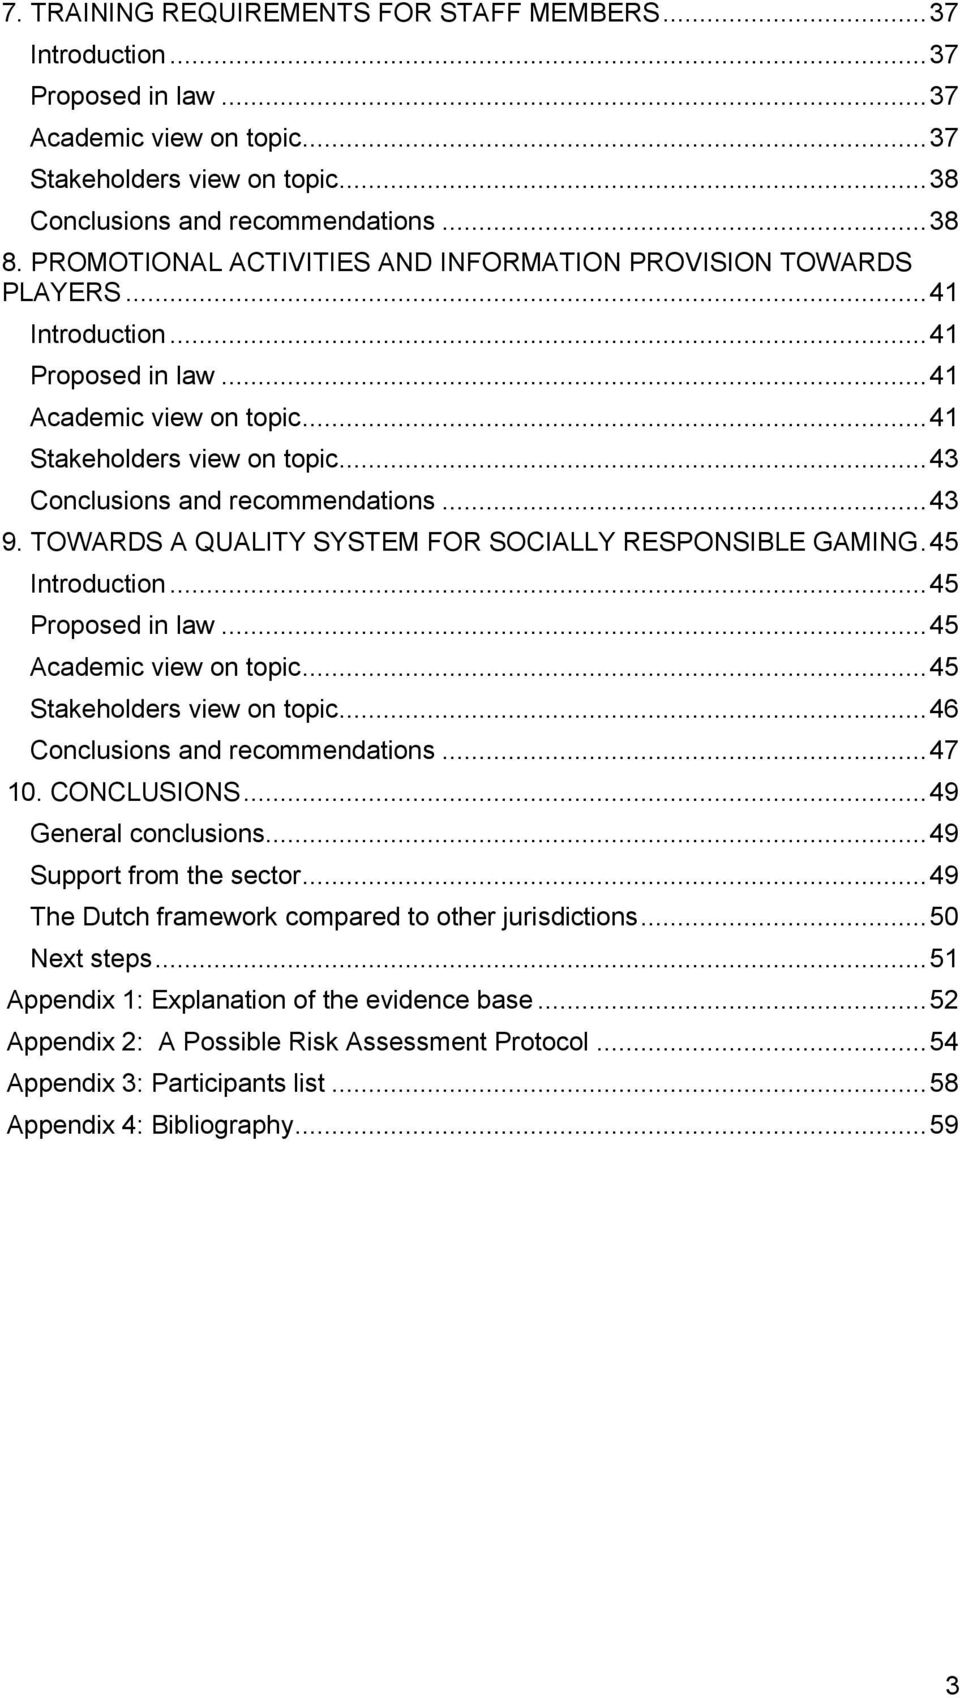 .. 43 Conclusions and recommendations... 43 9. TOWARDS A QUALITY SYSTEM FOR SOCIALLY RESPONSIBLE GAMING. 45 Introduction... 45 Proposed in law... 45 Academic view on topic.